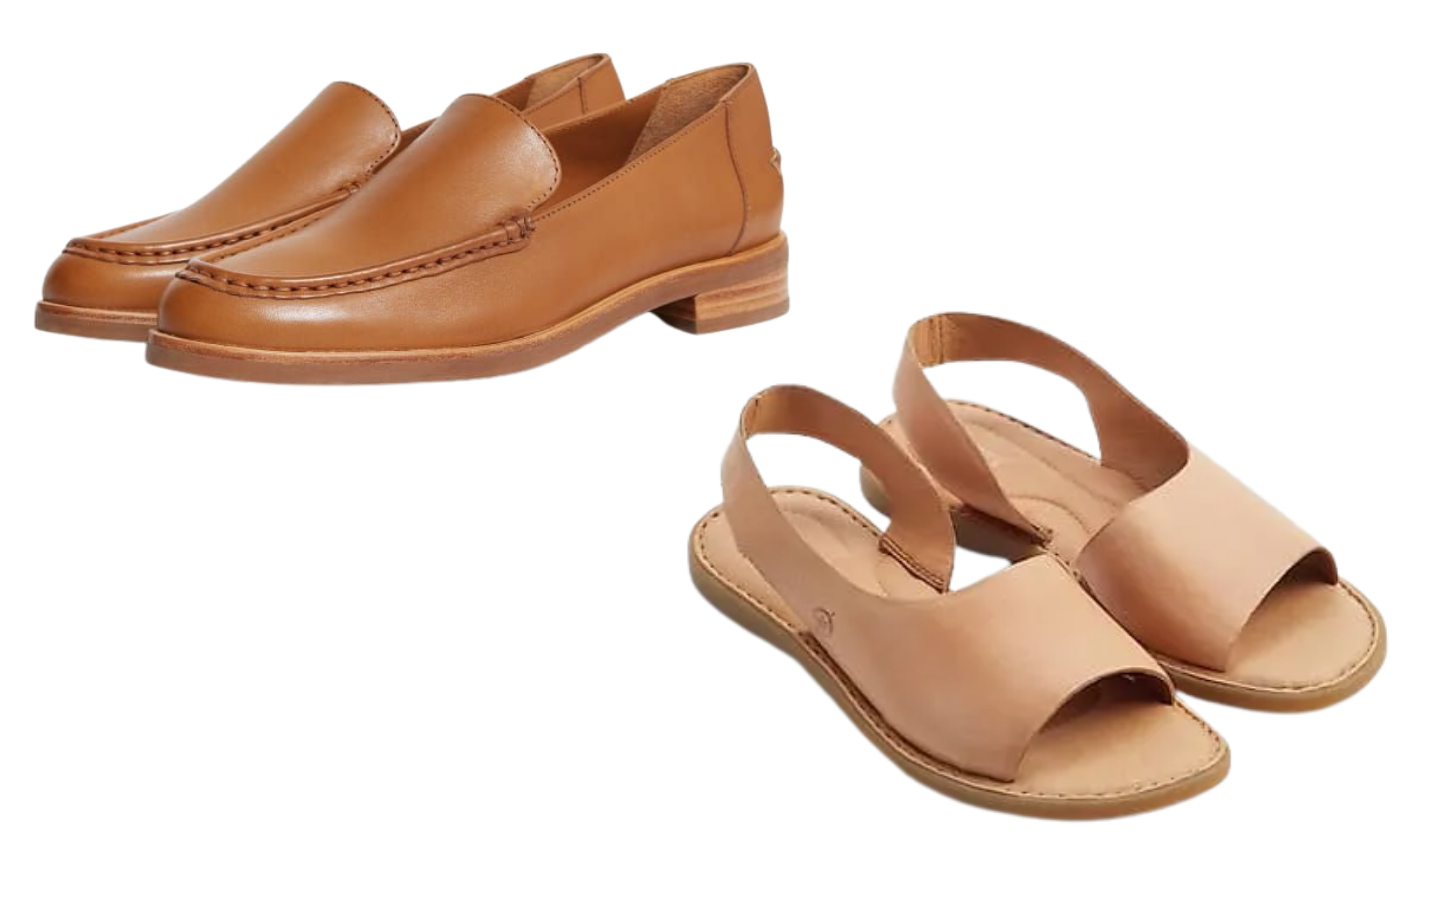 loafers & sandals